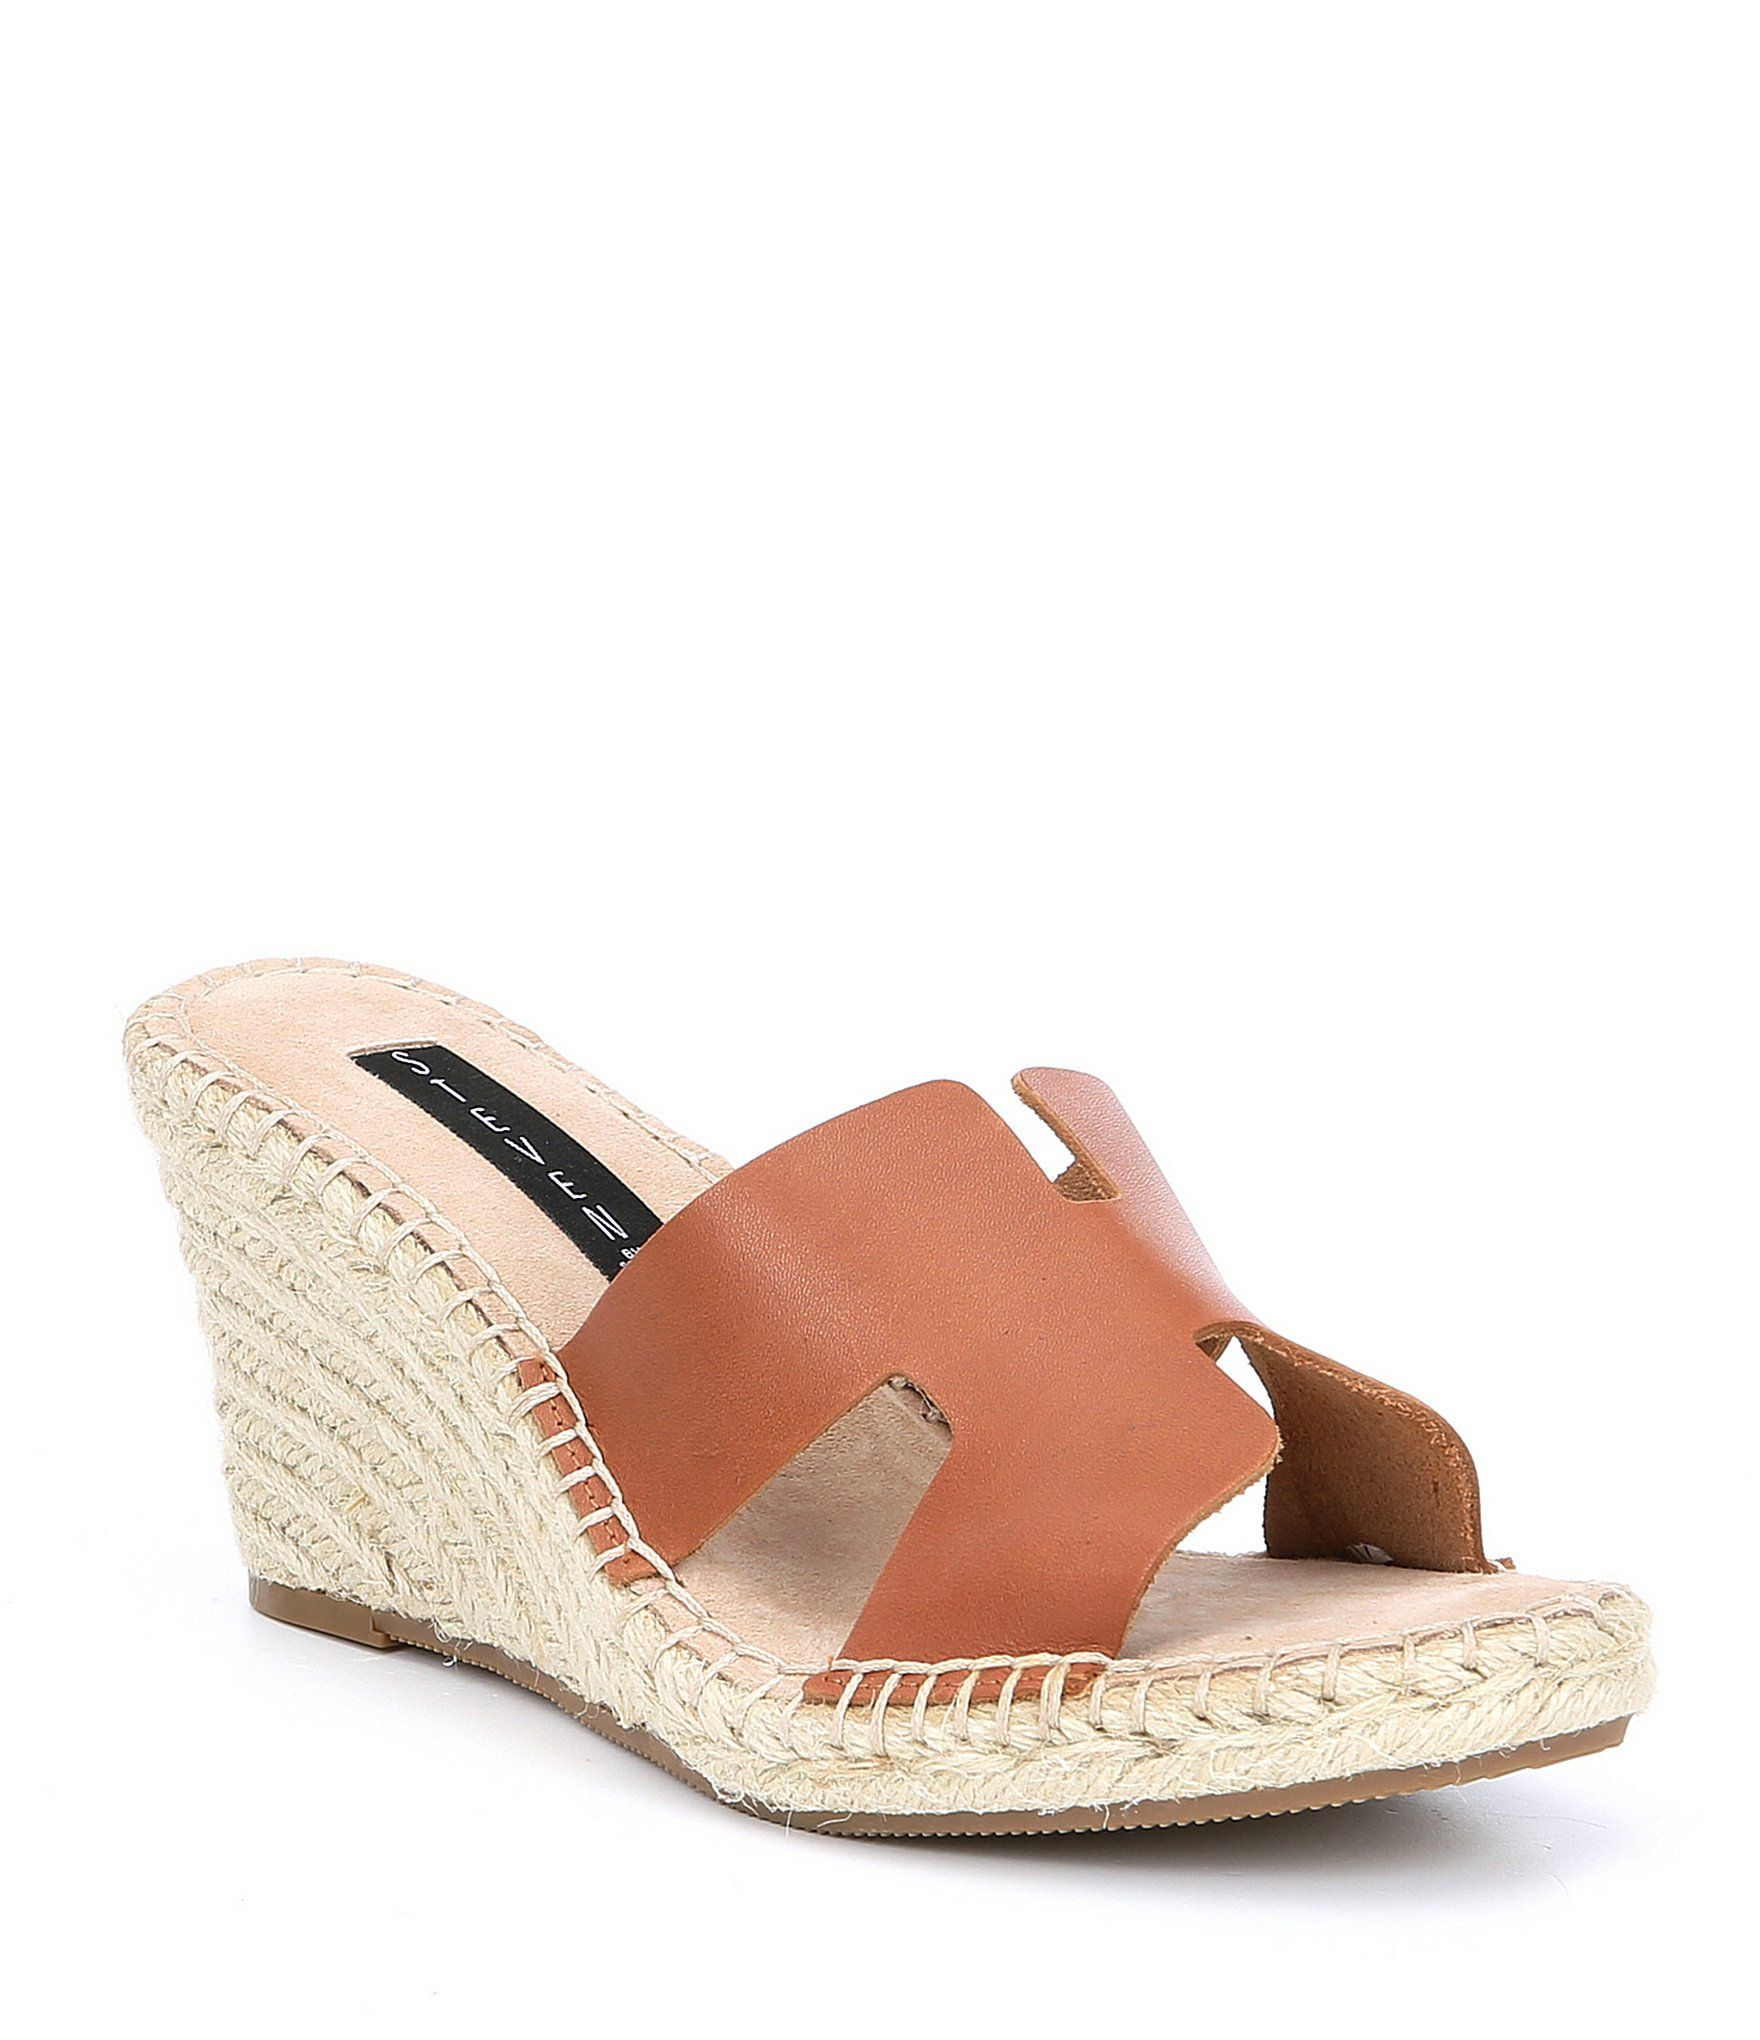 36603c0b299 Pin by Shaunda Necole on Beautiful Accessories | Leather espadrilles ...